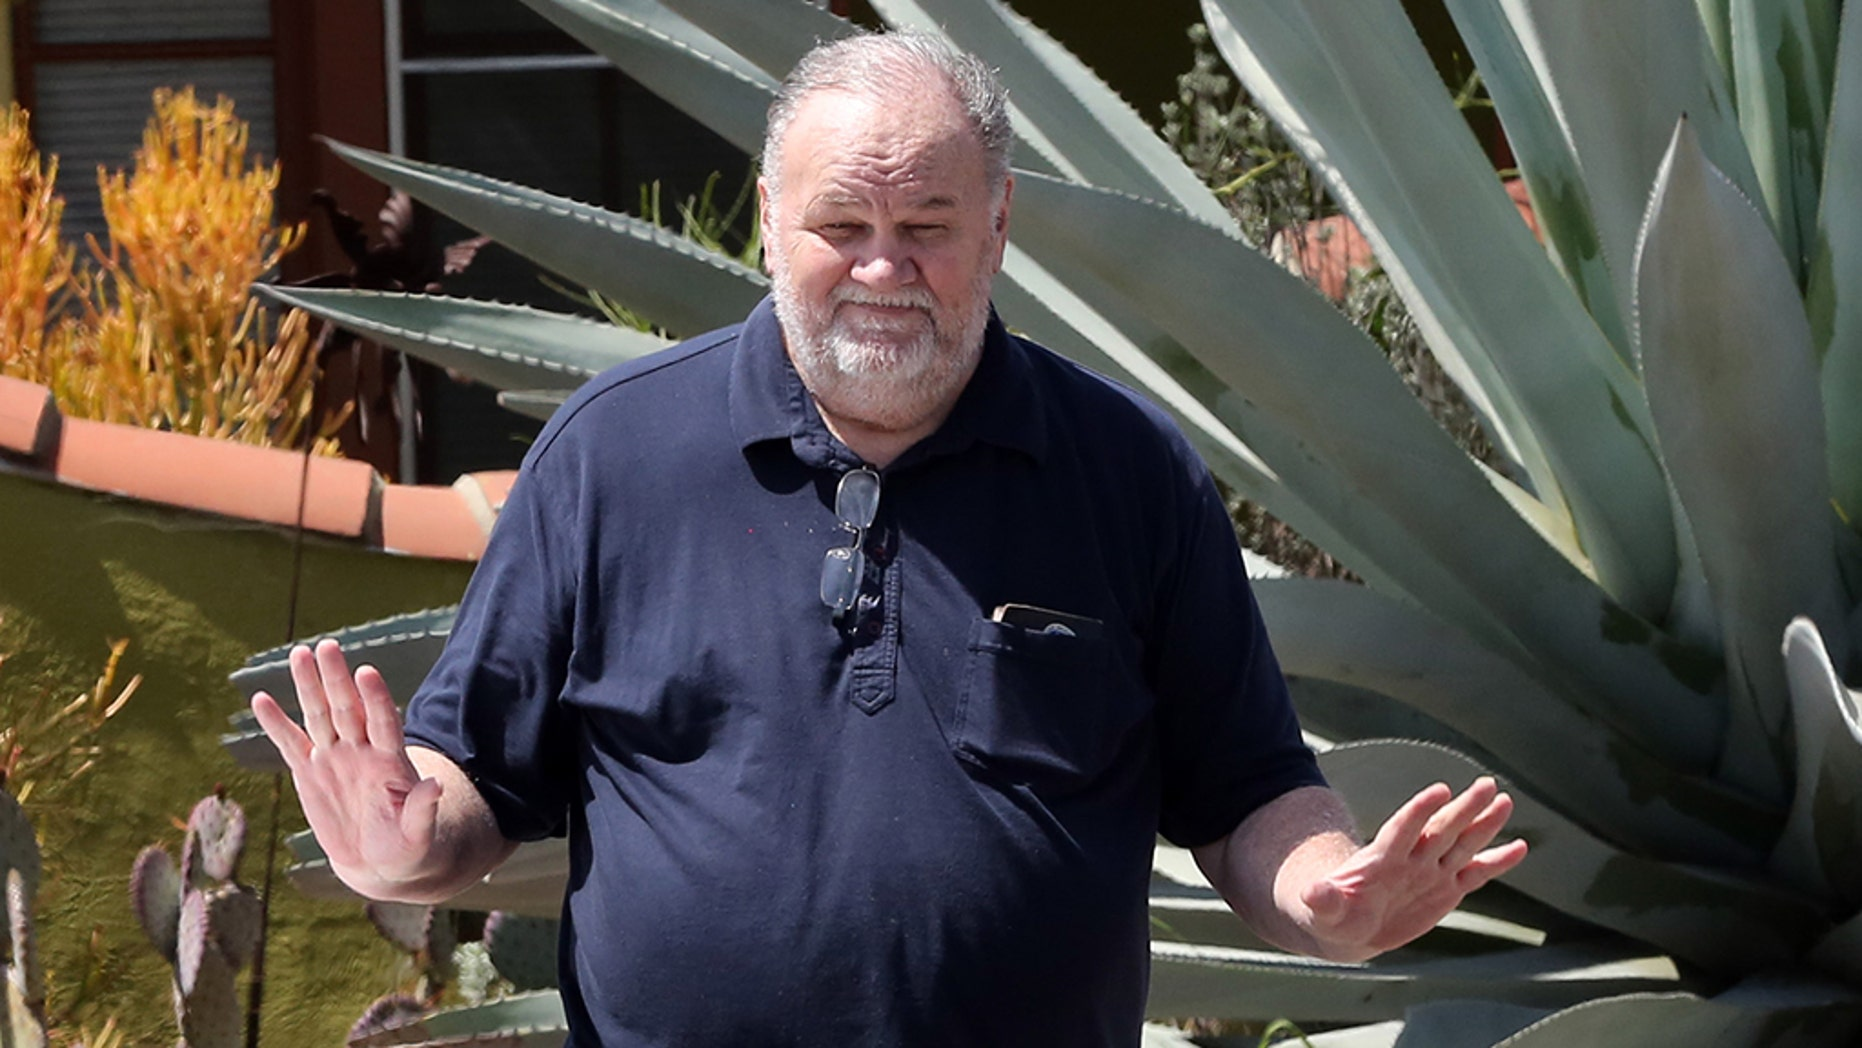 Meghan Markle's father Thomas Markle said he regretted posing for staged paparazzi photos.